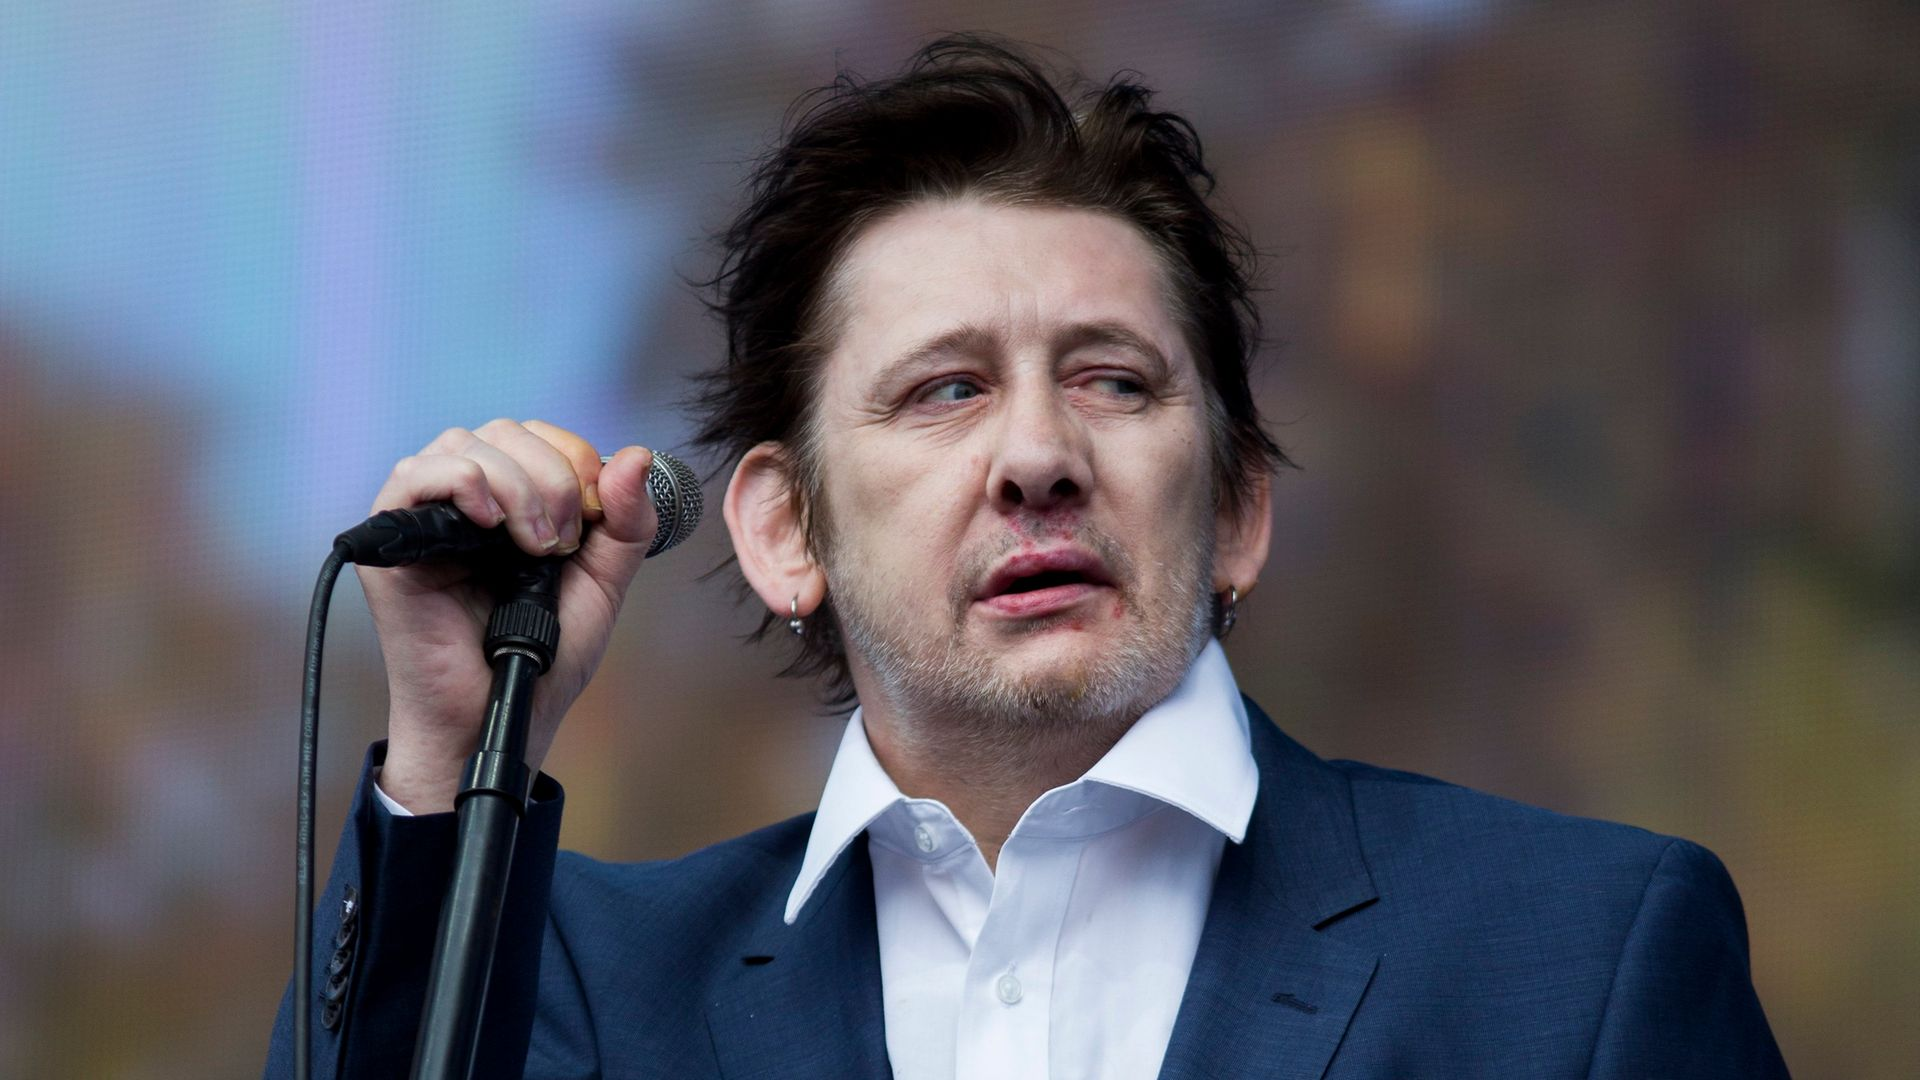 Shane MacGowan of The Pogues performs on stage at British Summer Time Festival. - Credit: Tristan Fewings/Getty Images